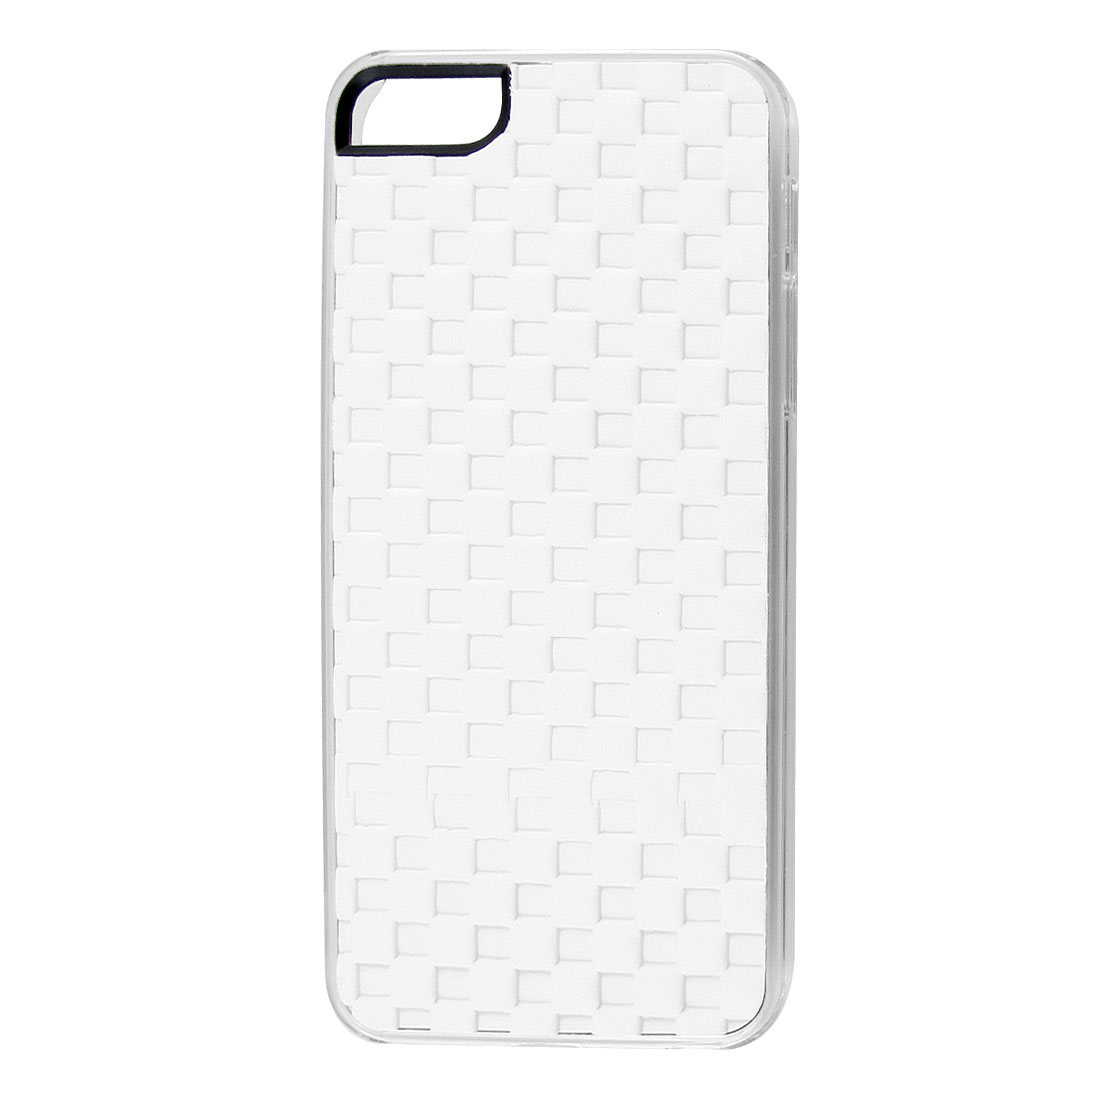 White Faux Leather Coated Check Hard Back Case Cover for Apple iPhone 5 5G 5th